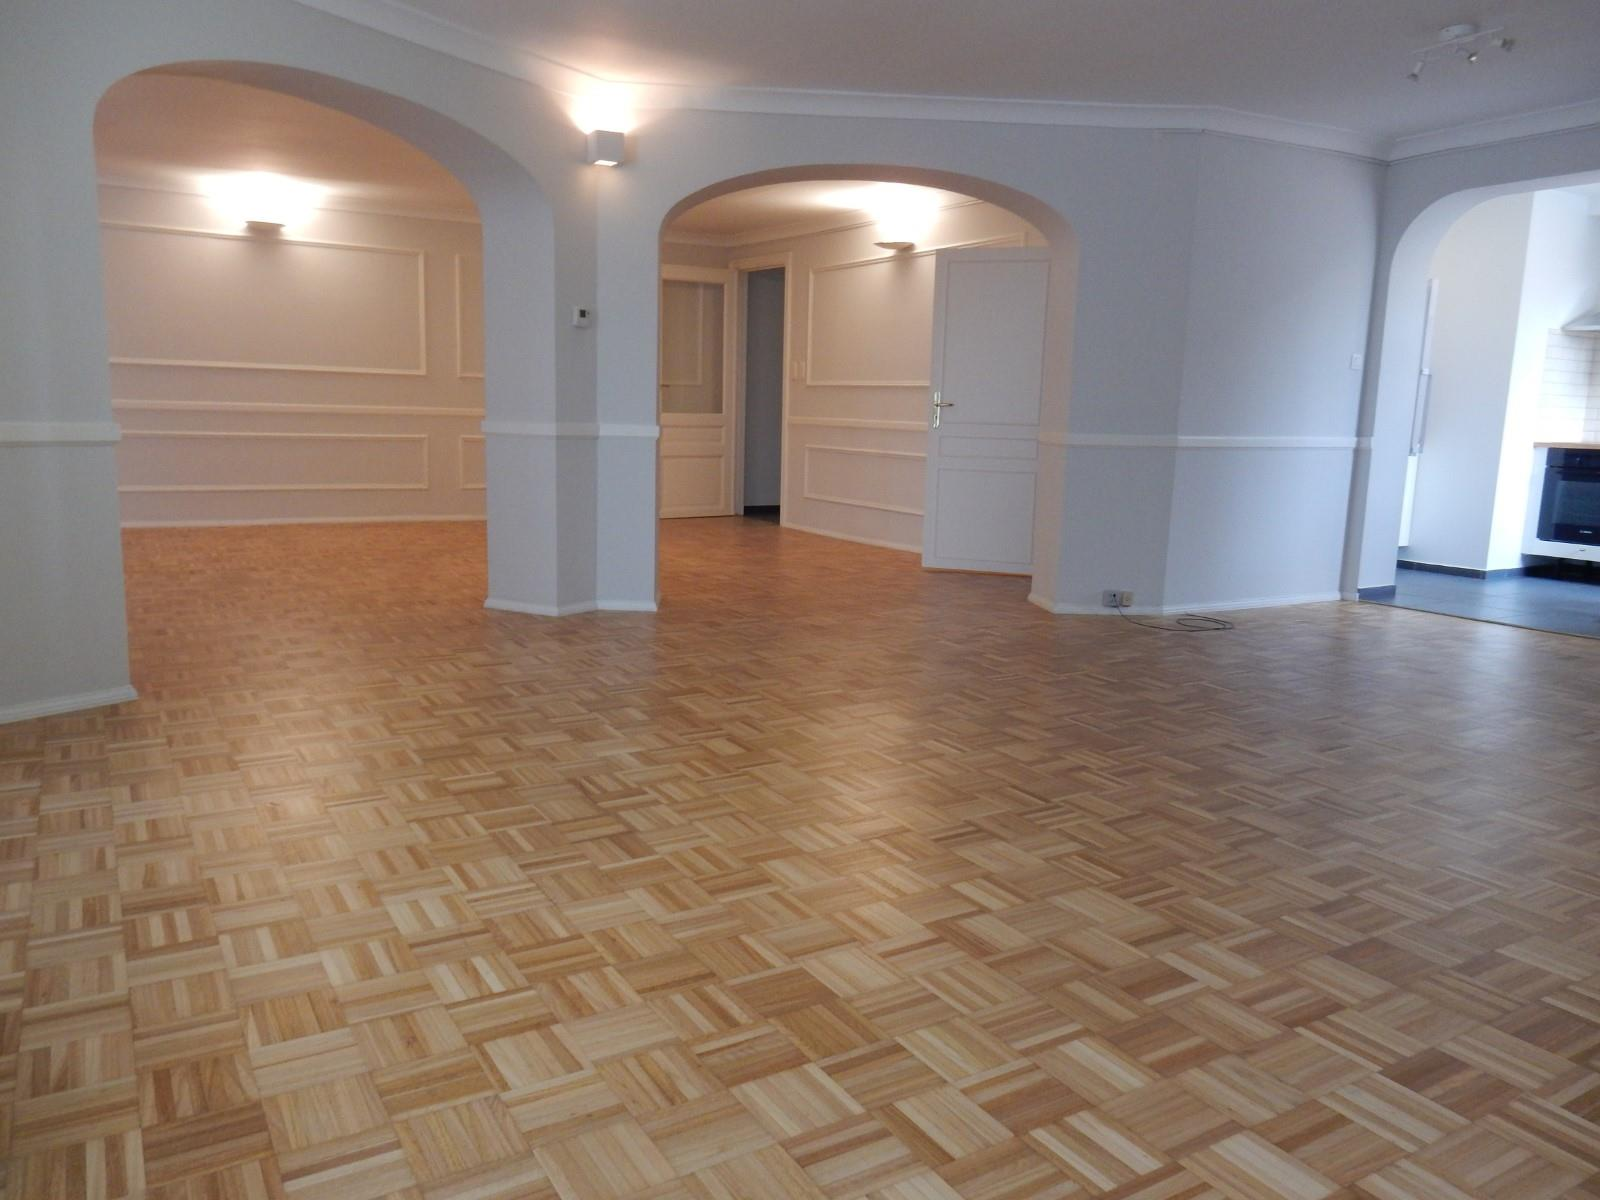 Flat in charming house - Etterbeek - #3183224-4